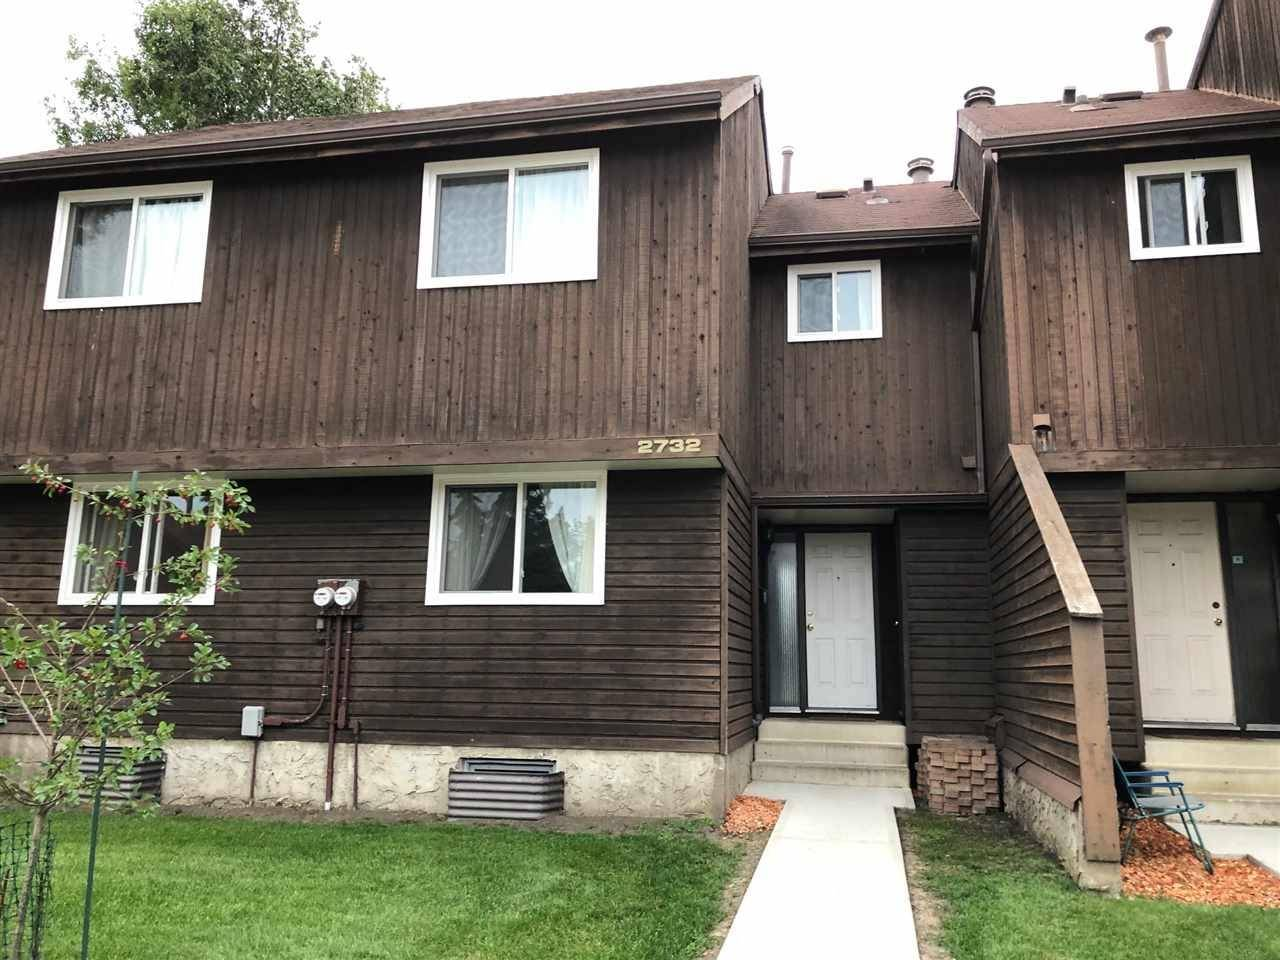 Townhouse for sale at 2732 105 St Nw Edmonton Alberta - MLS: E4167380